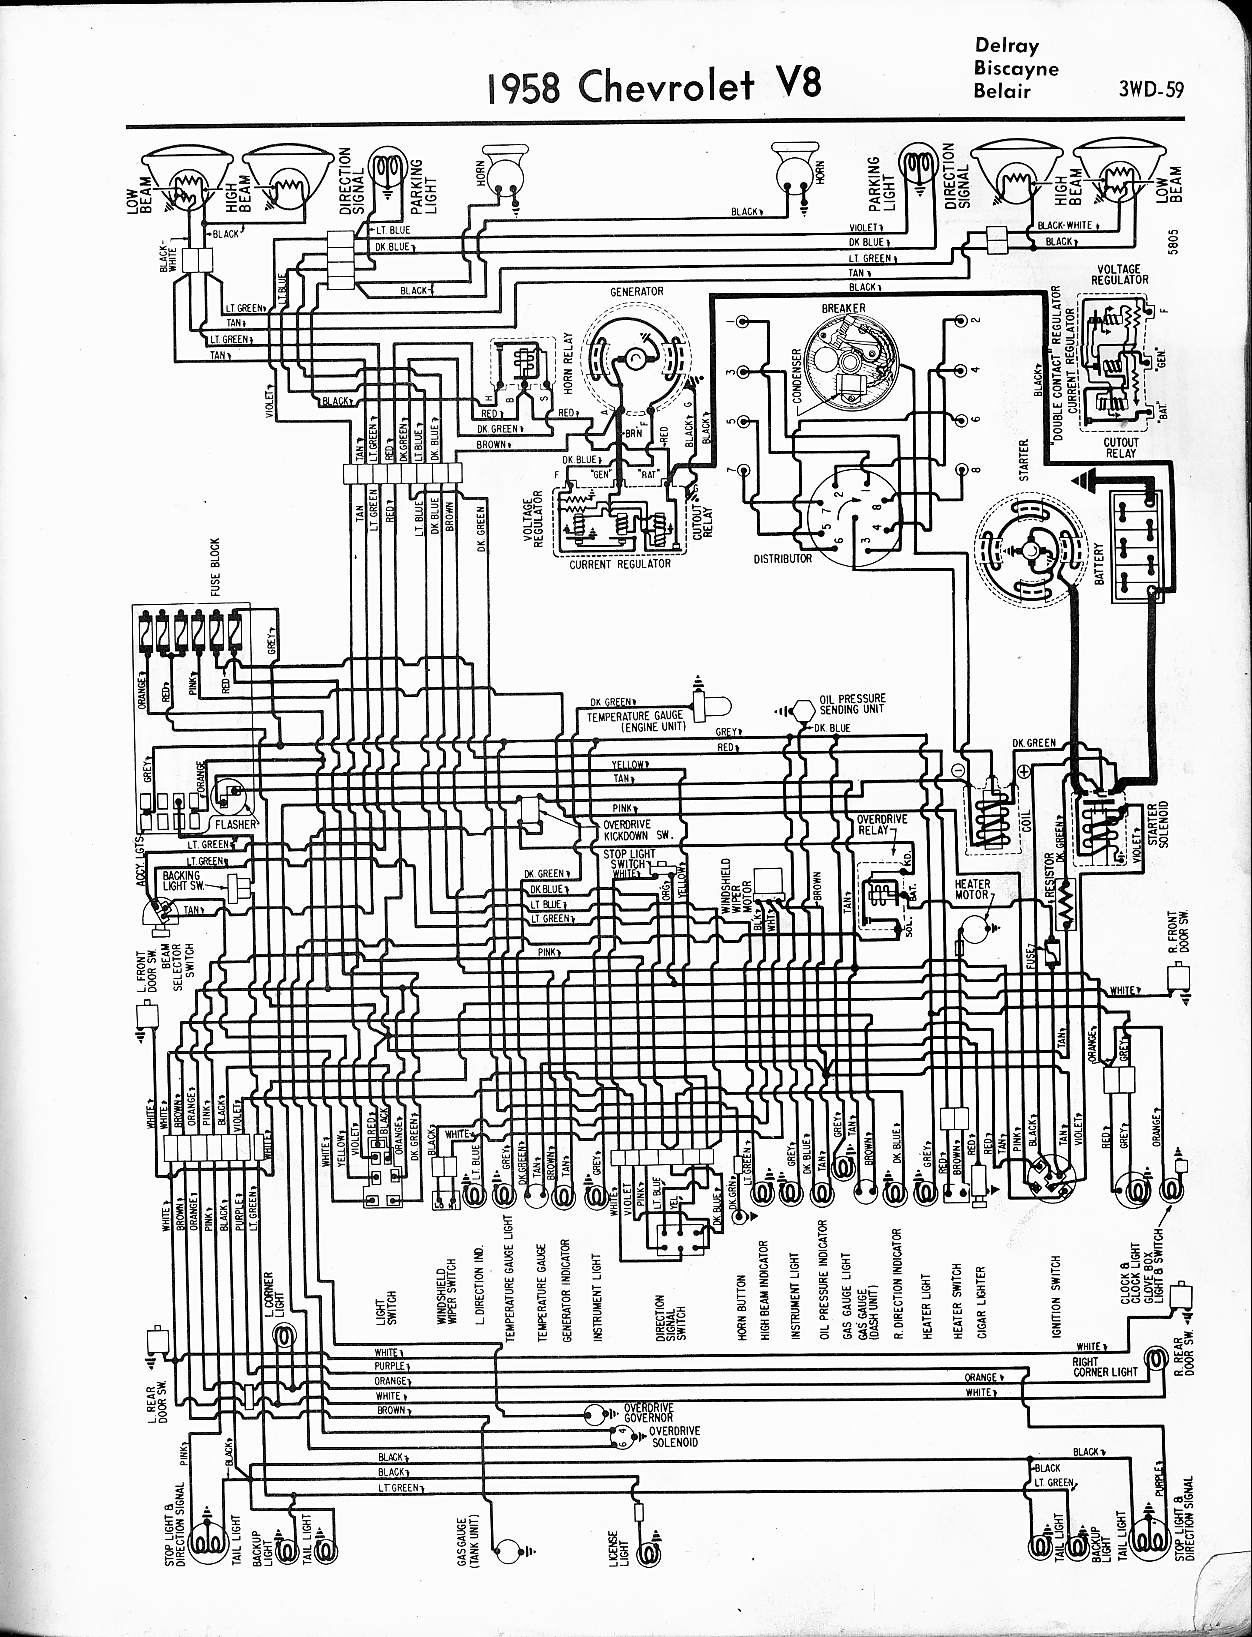 hight resolution of 57 65 chevy wiring diagrams 1959 edsel wiring diagram 1958 v8 delray biscayne belair